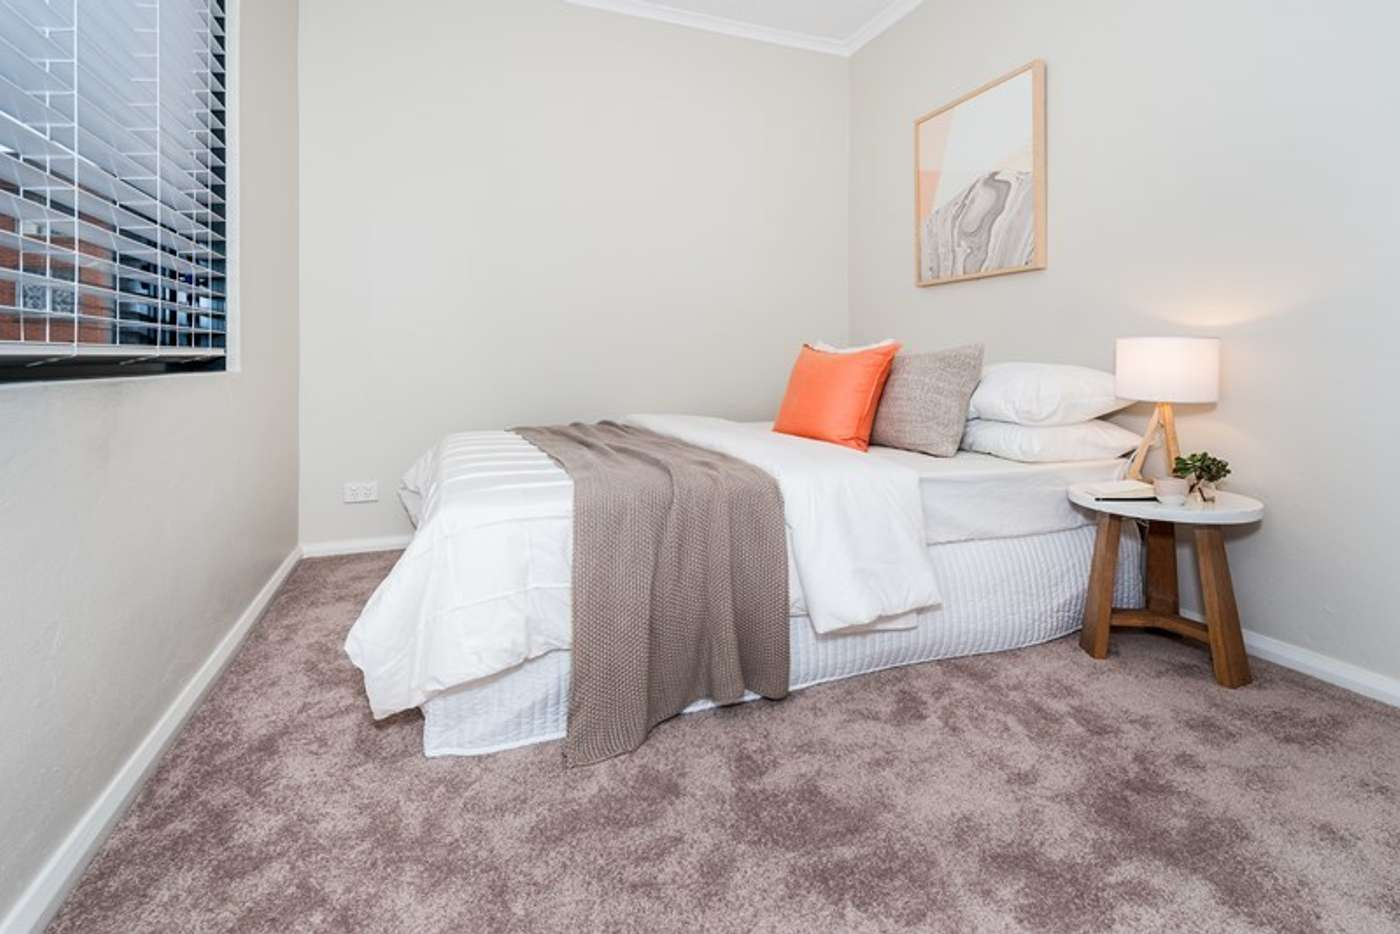 Seventh view of Homely apartment listing, 4/29 Tramway Street, Rosebery NSW 2018